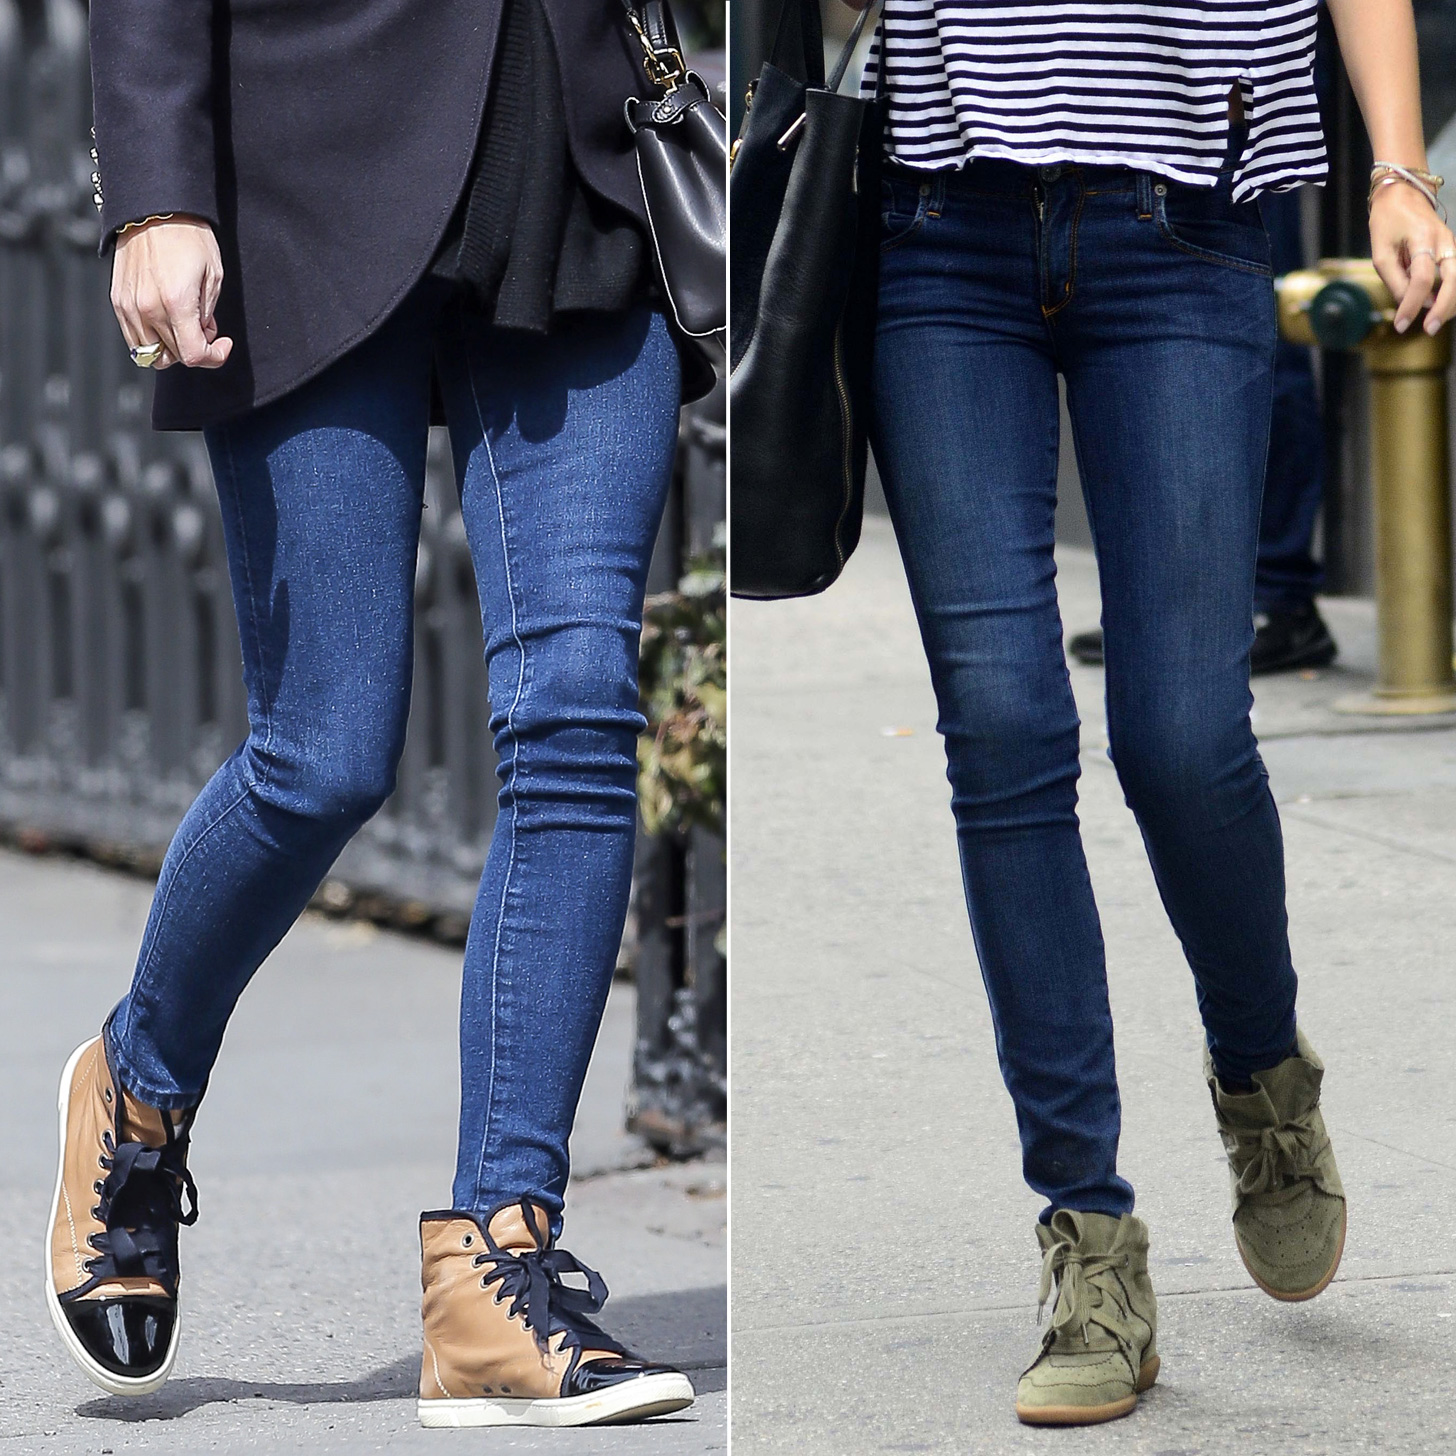 How to wear wedge trainers with jeans